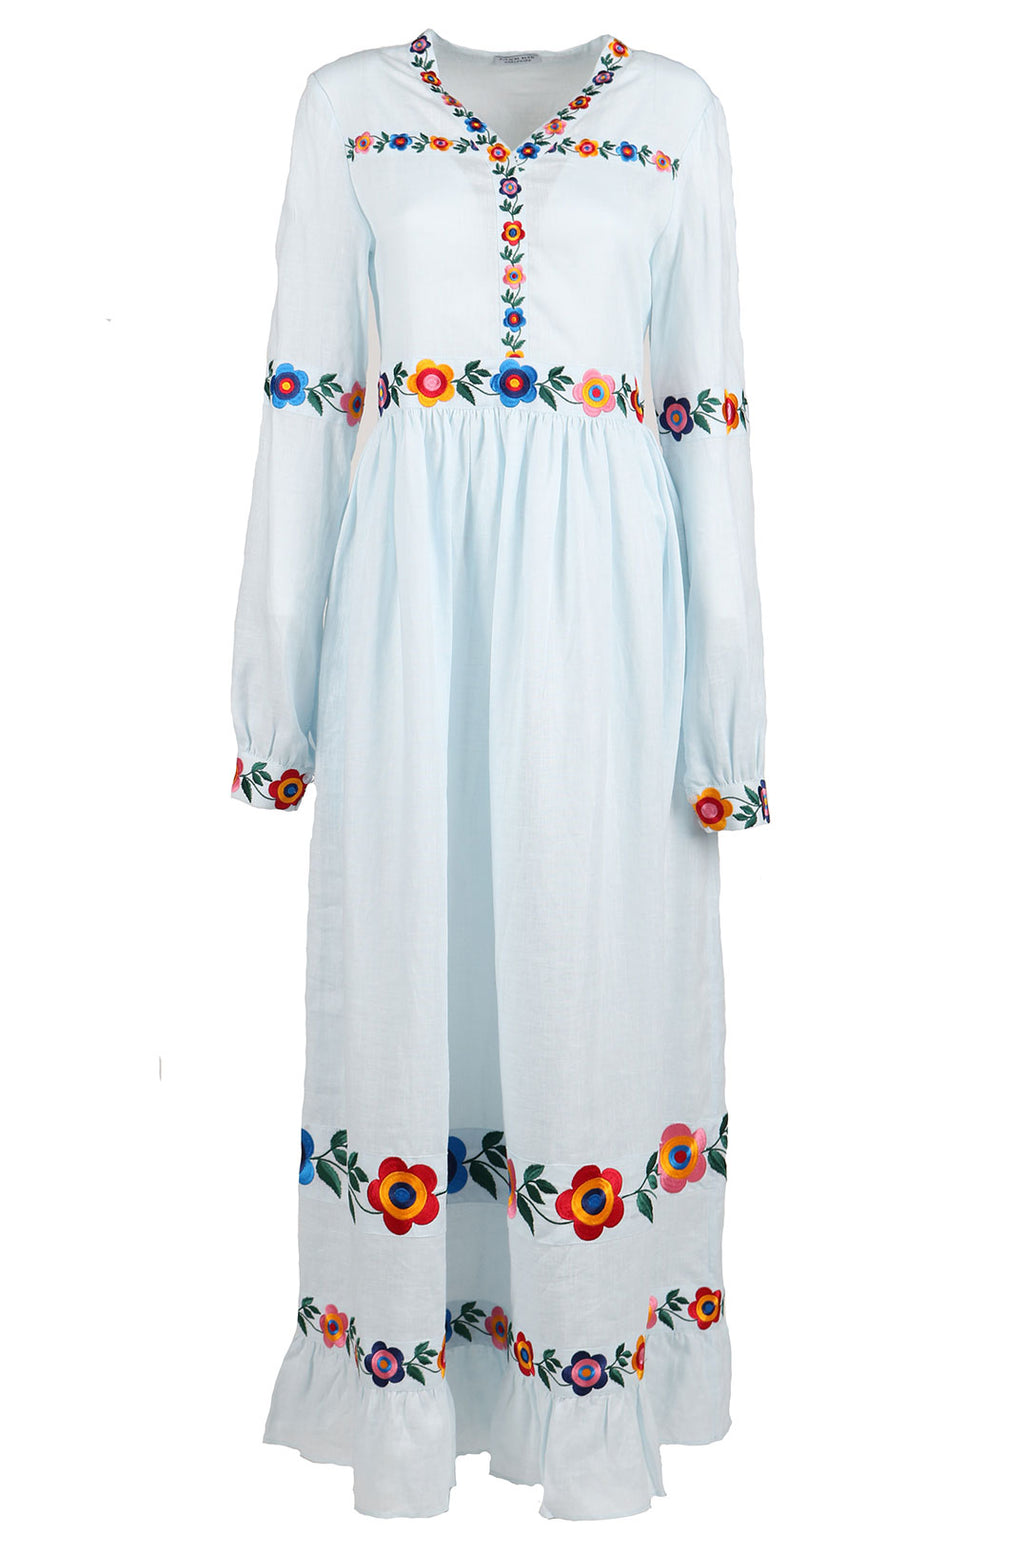 Fanm Mon BOHEME Vyshyvanka Light Blue Linen Multi Floral Embroidered MAXI Dress